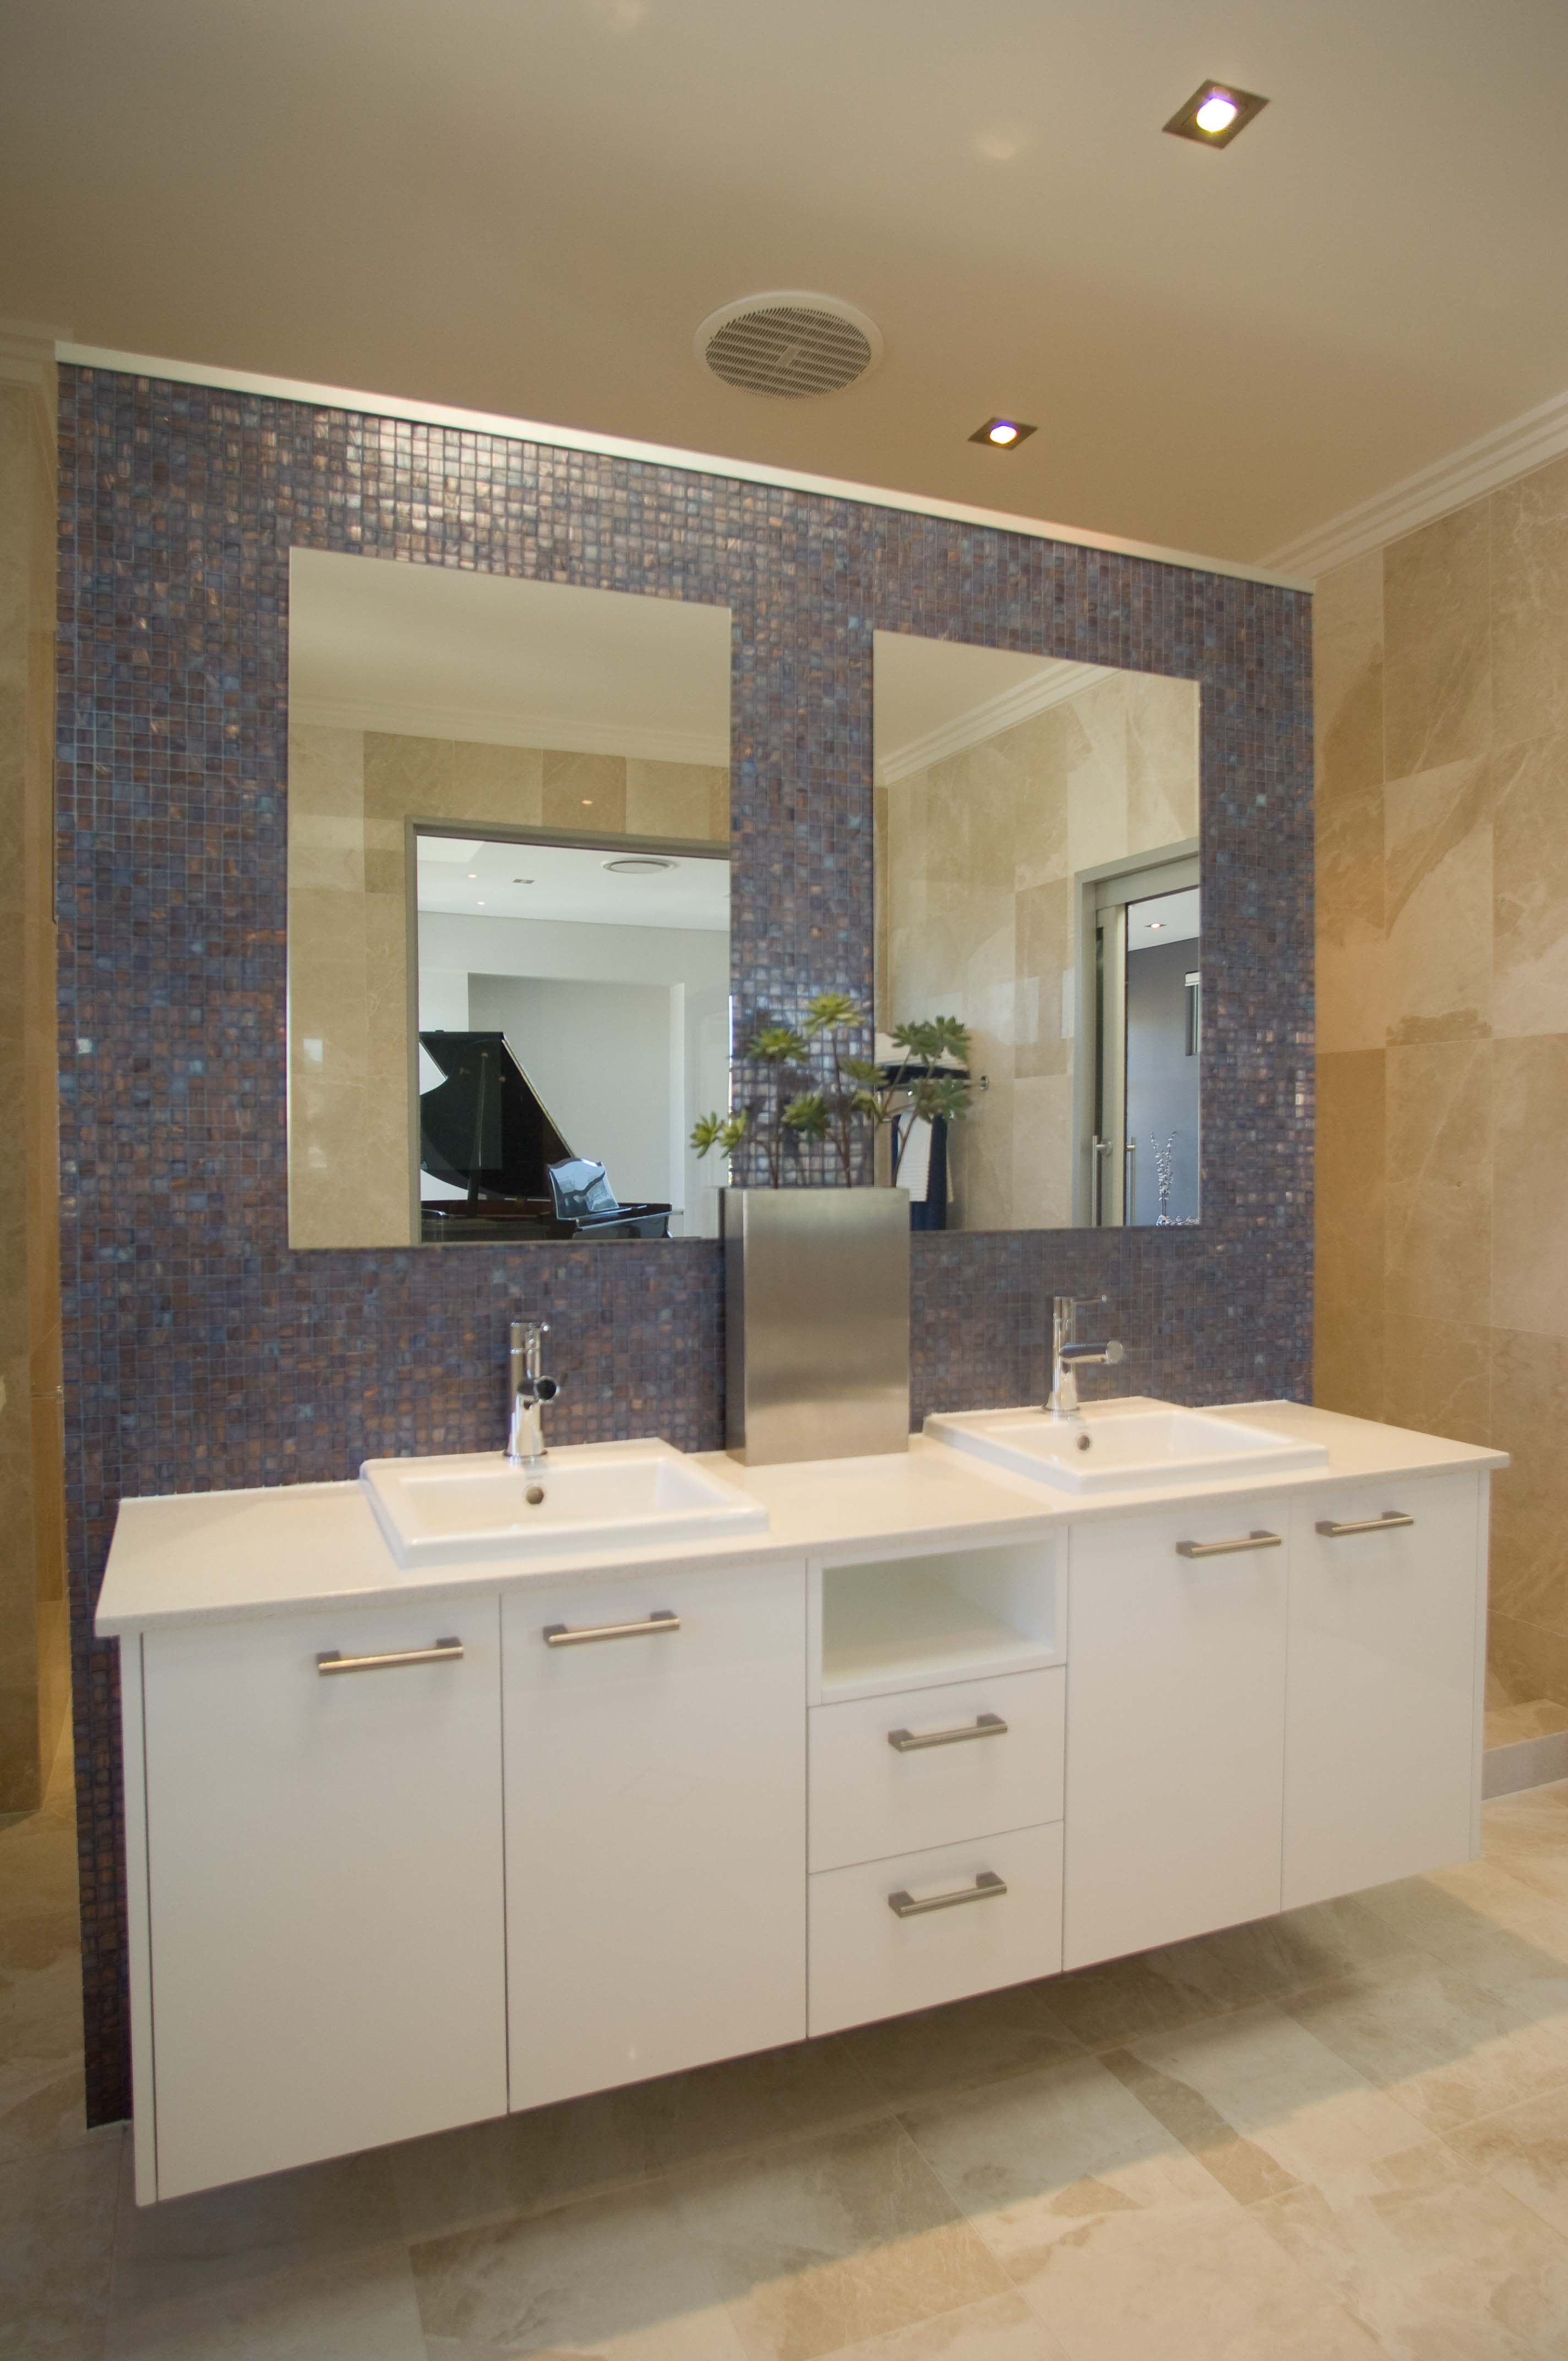 Bathrooms Bastian Wardrobes Kitchens Custom Wardrobes Wellington Lower Hutt Kapiti